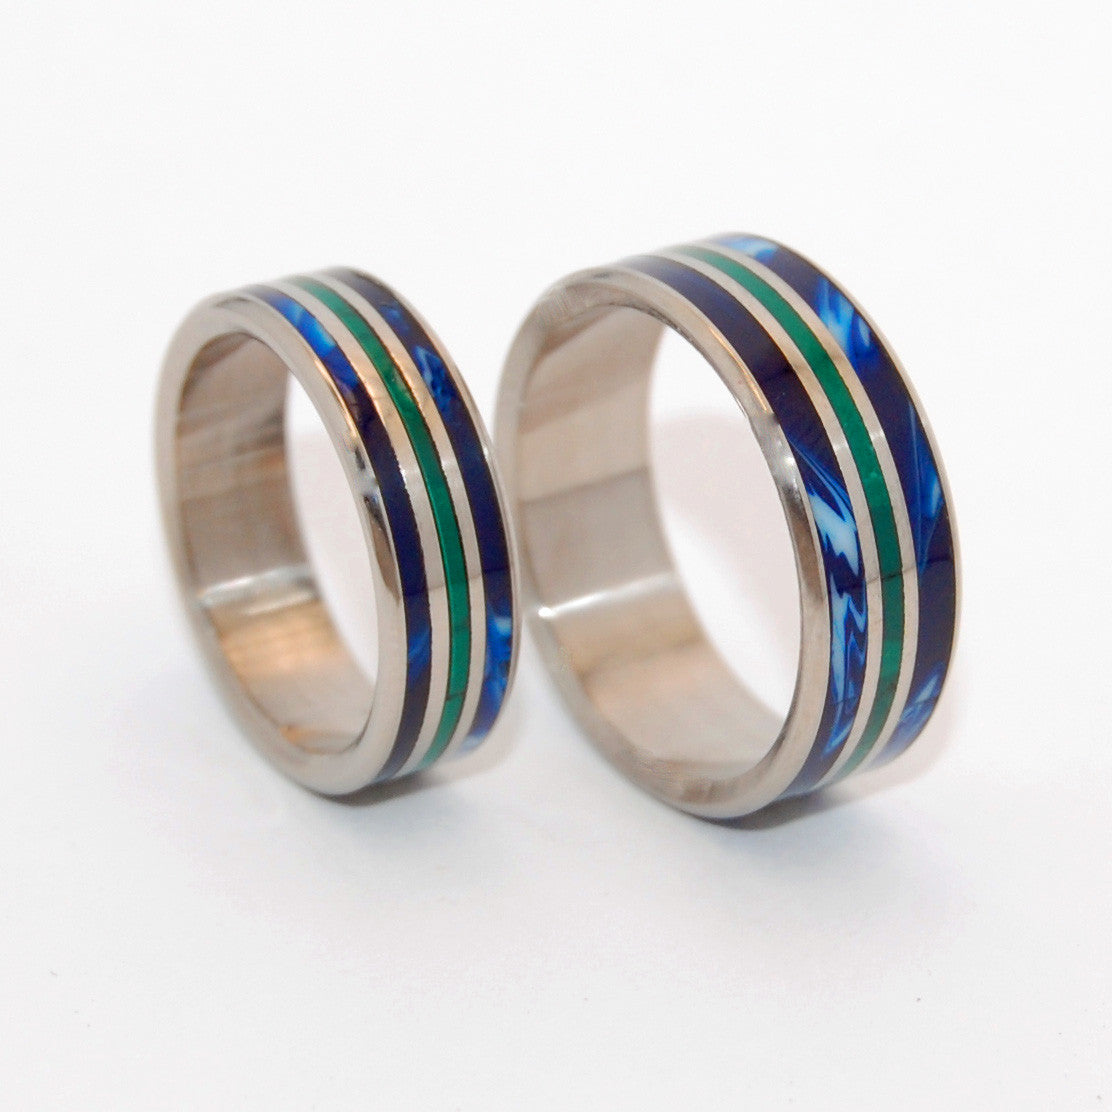 OUR WORLD FLIP | Jade Stone & Blue Vintage Resin - Titanium Wedding Rings Set - Minter and Richter Designs